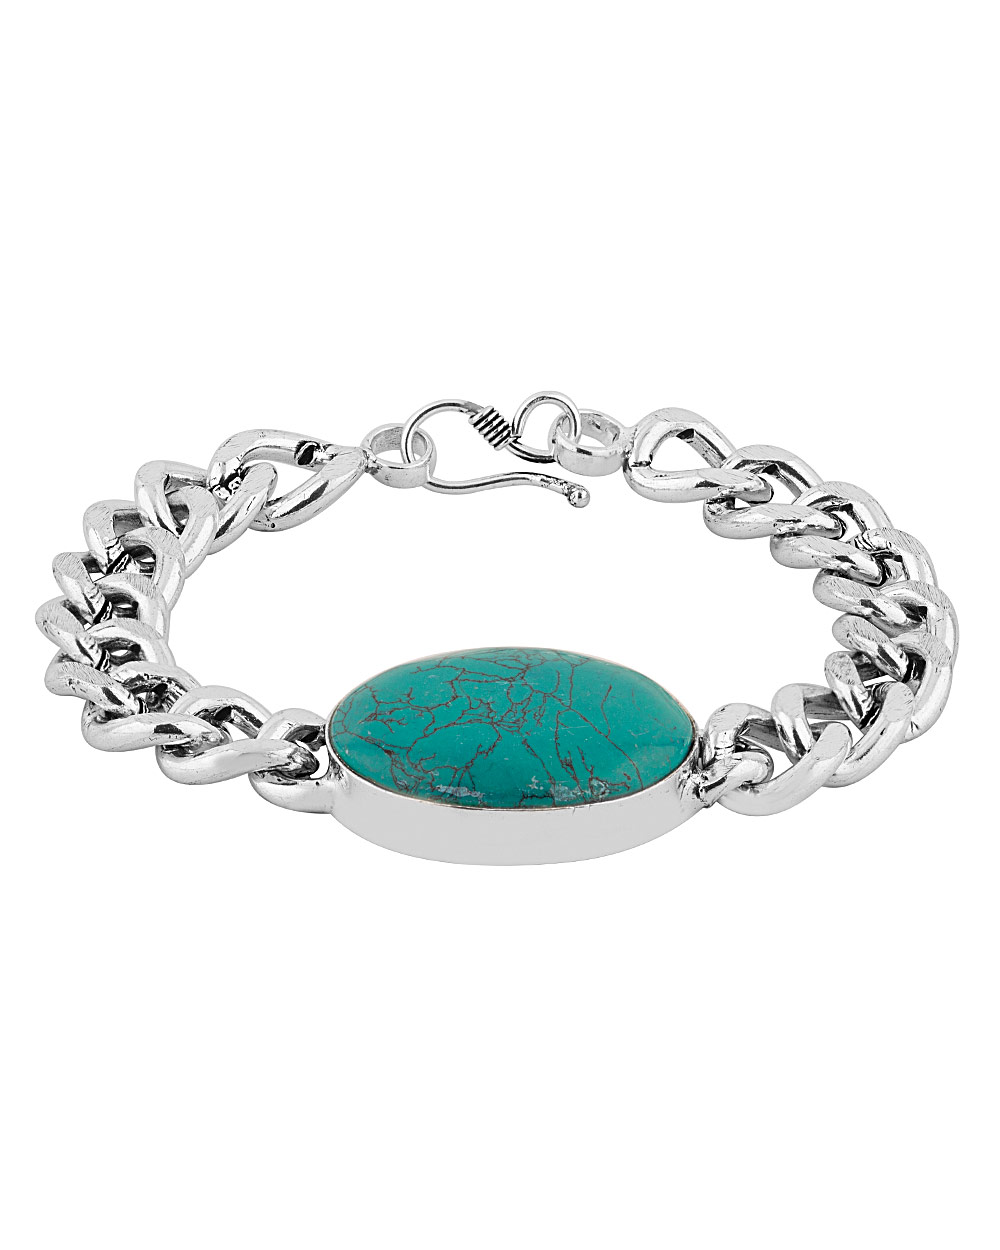 Buy Men\'s Silver Alloy Green Turquoise Studded Bracelet Online India ...